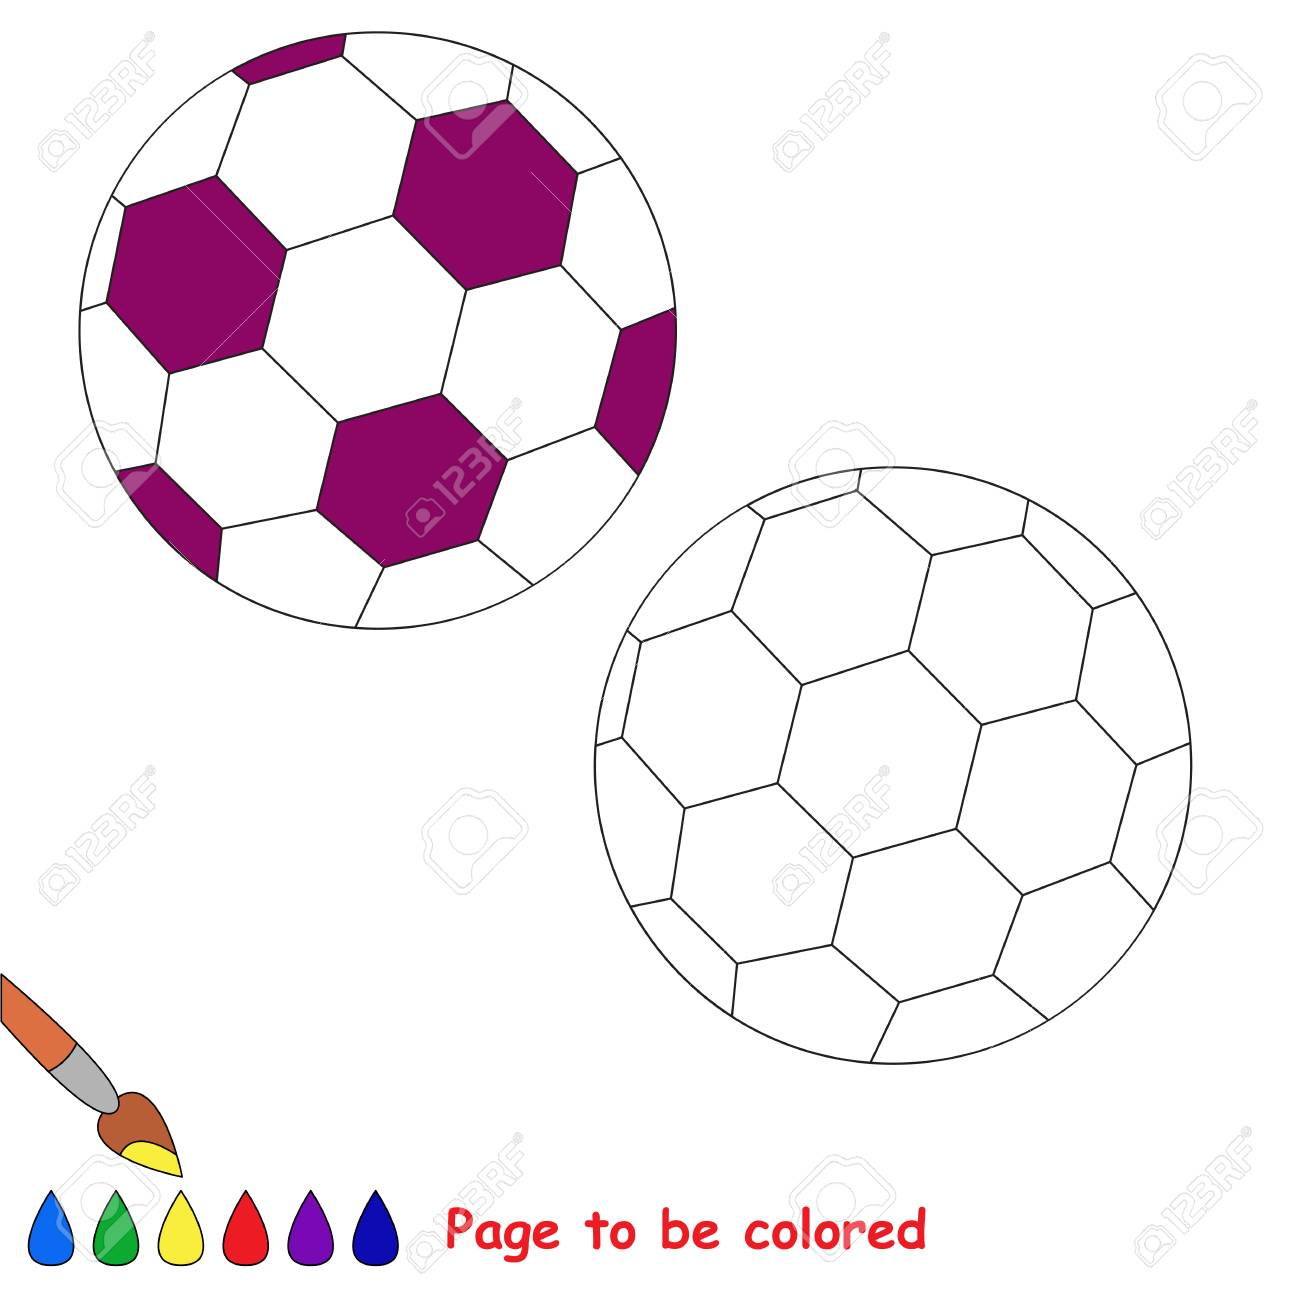 Football Ball To Be Colored, The Coloring Book For Preschool ...